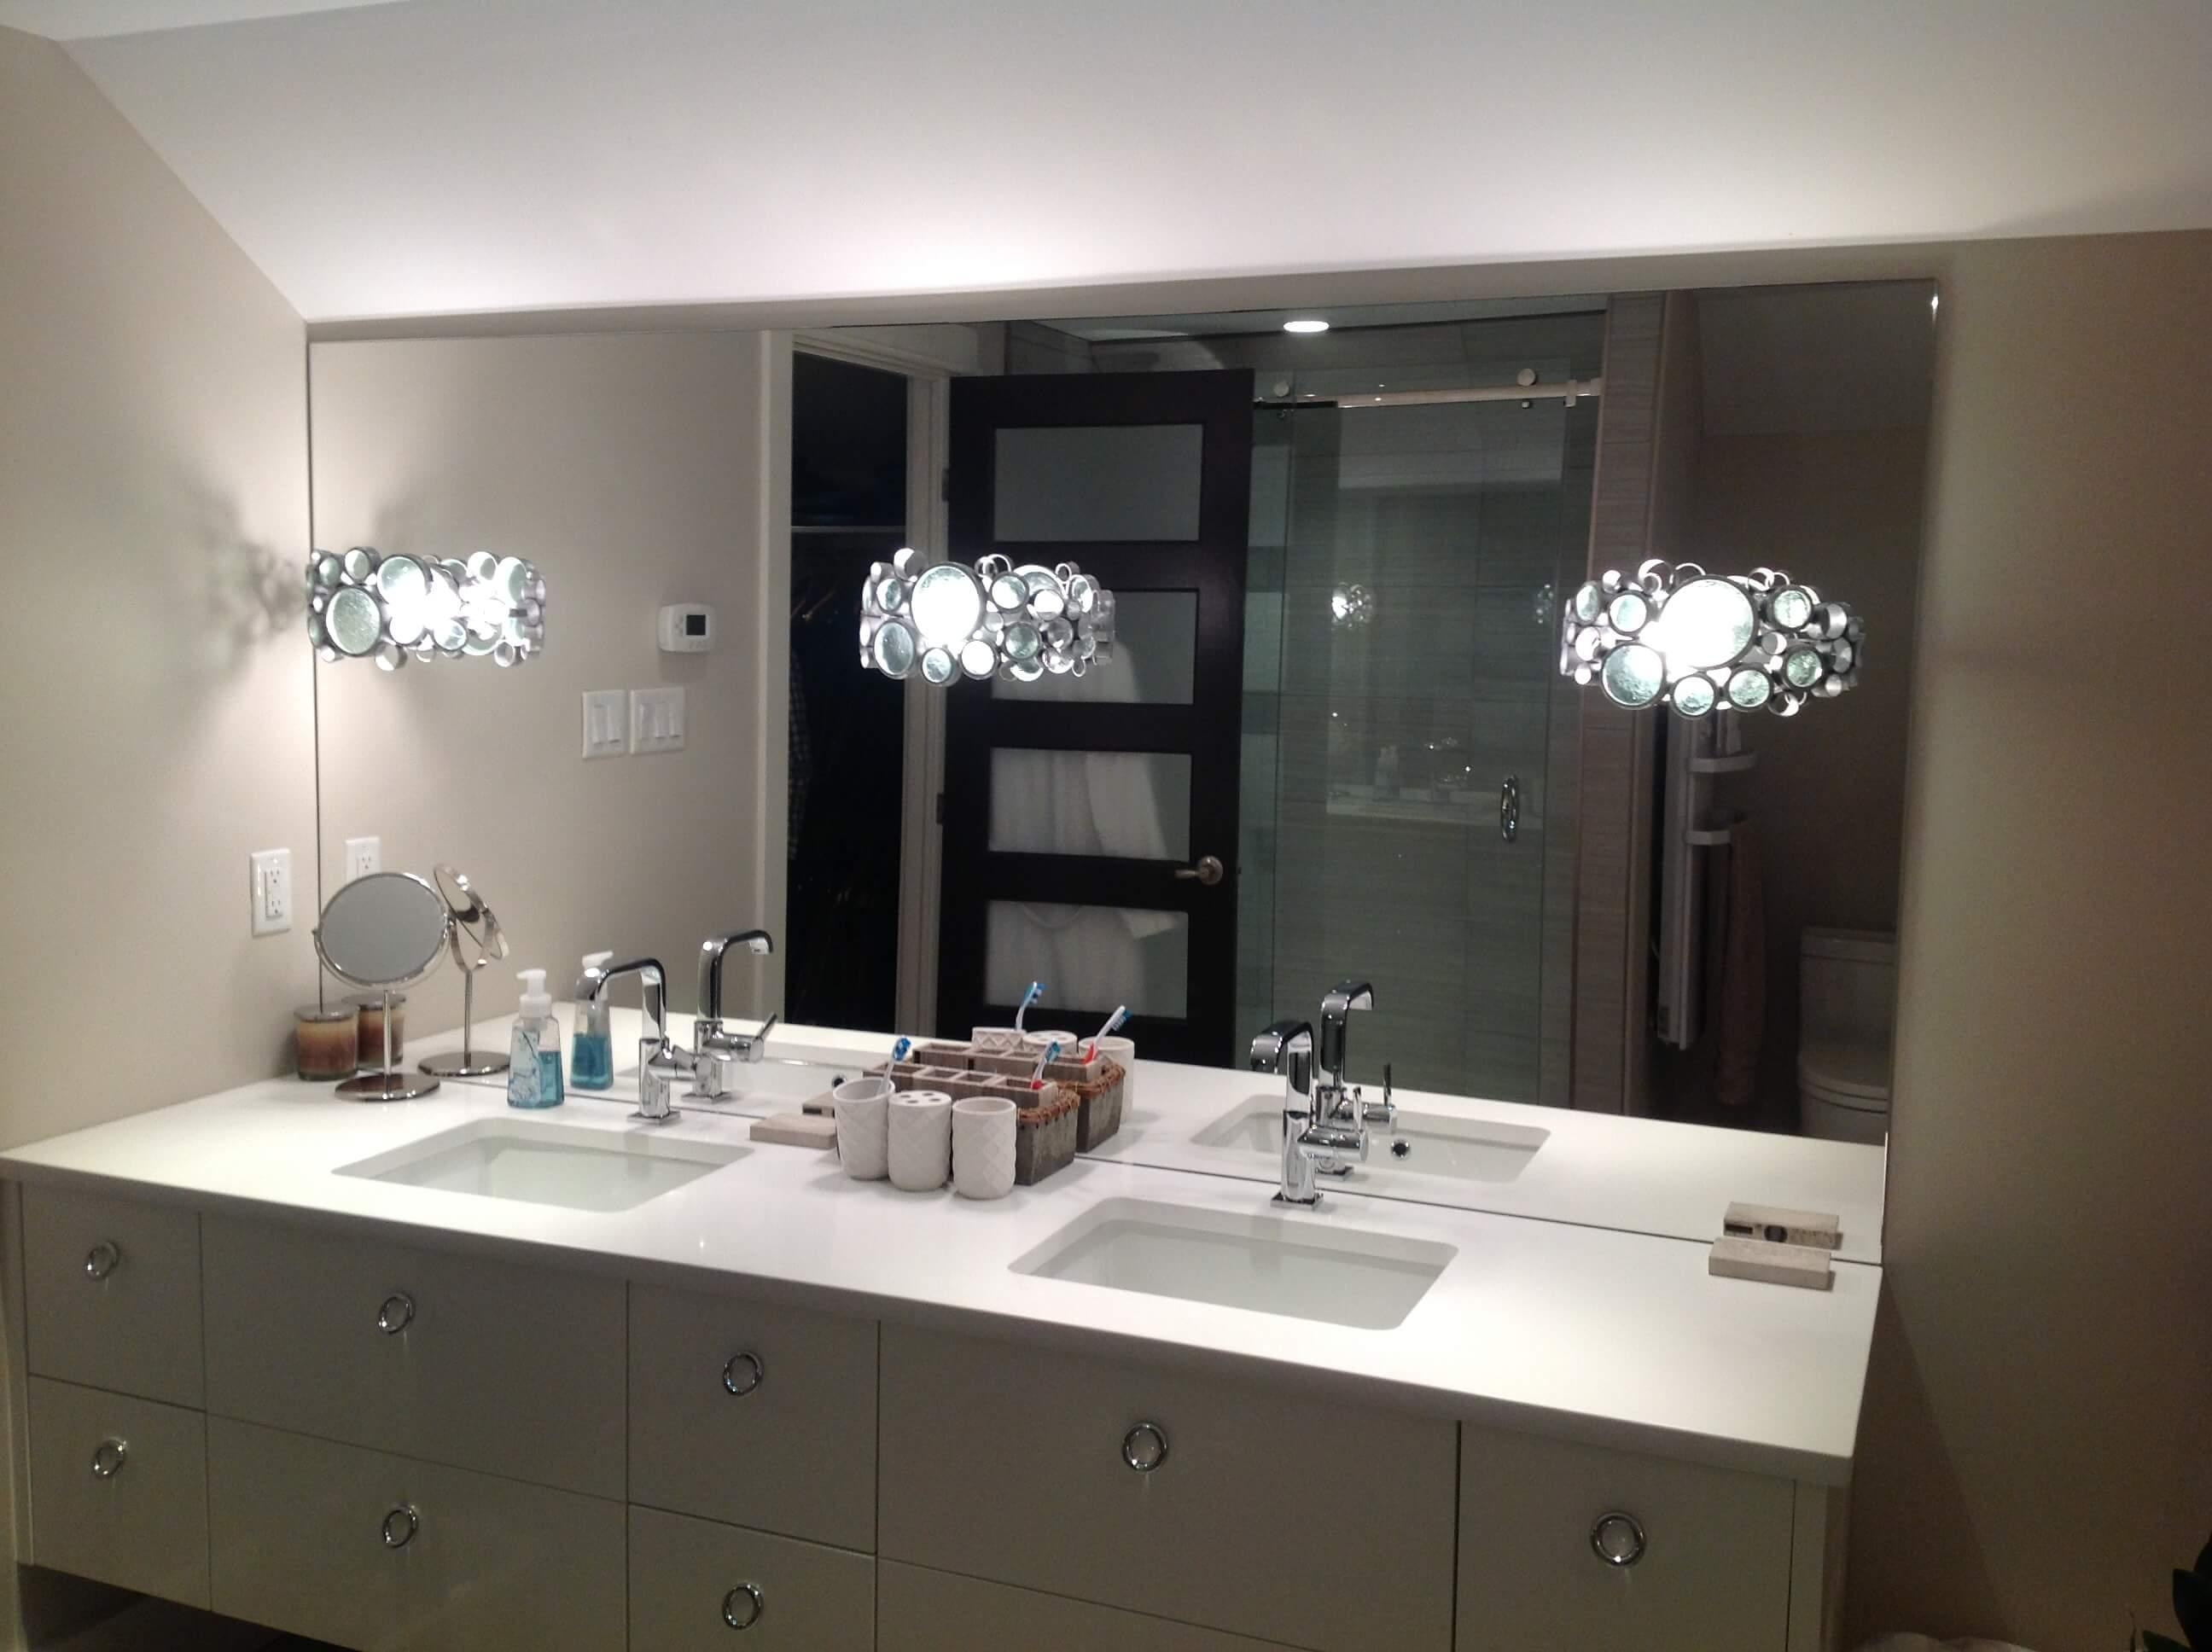 Custom Vanity Mirrors | Pars Glass In Custom Sized Mirrors (View 12 of 20)